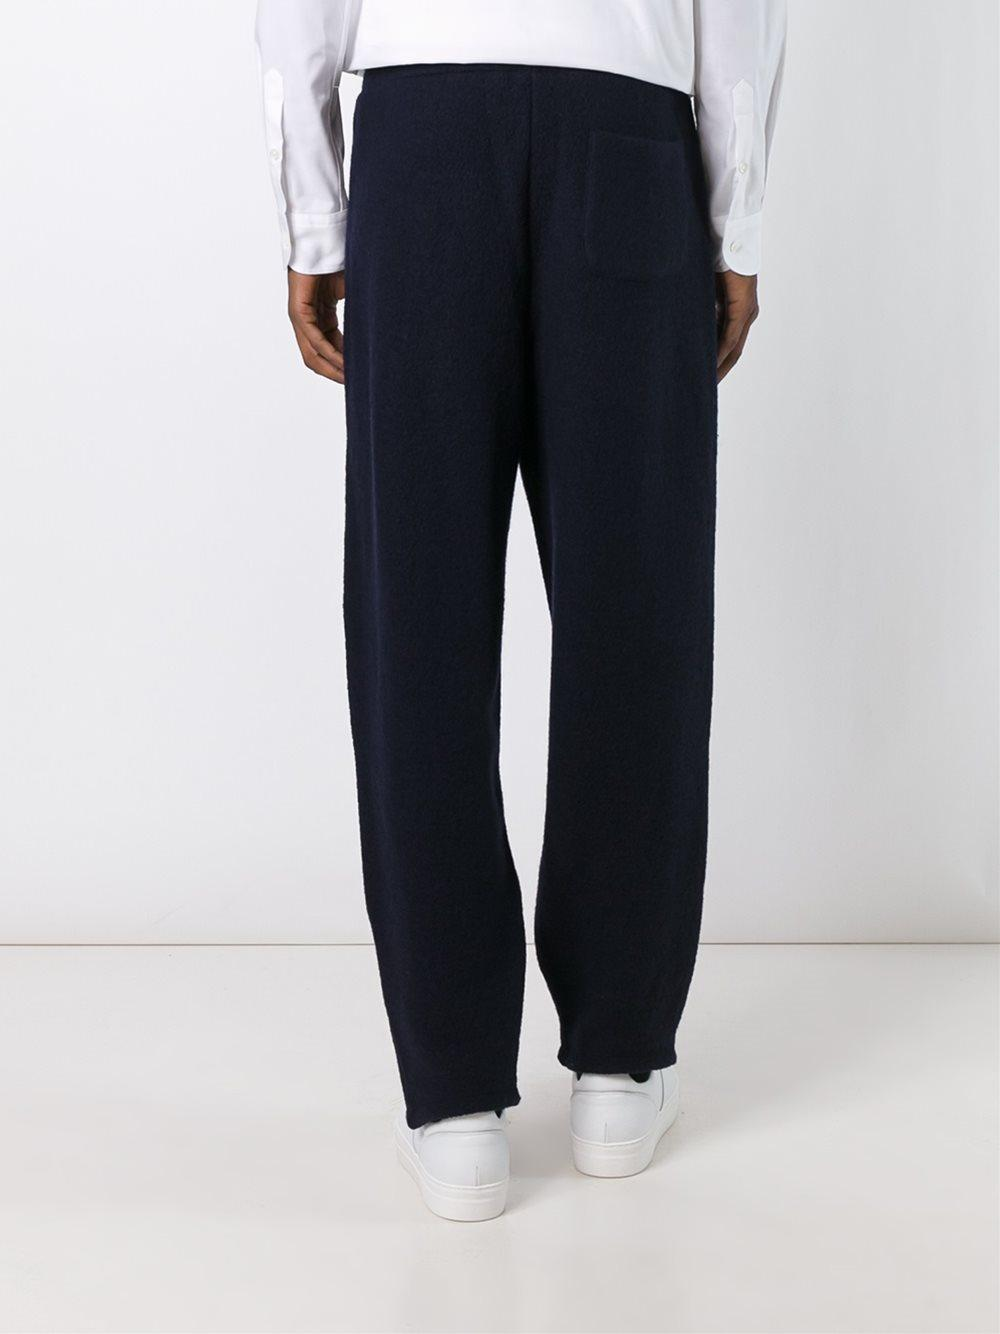 Ports 1961 Wool 'micro Boucle Felted' Trousers in Blue for Men